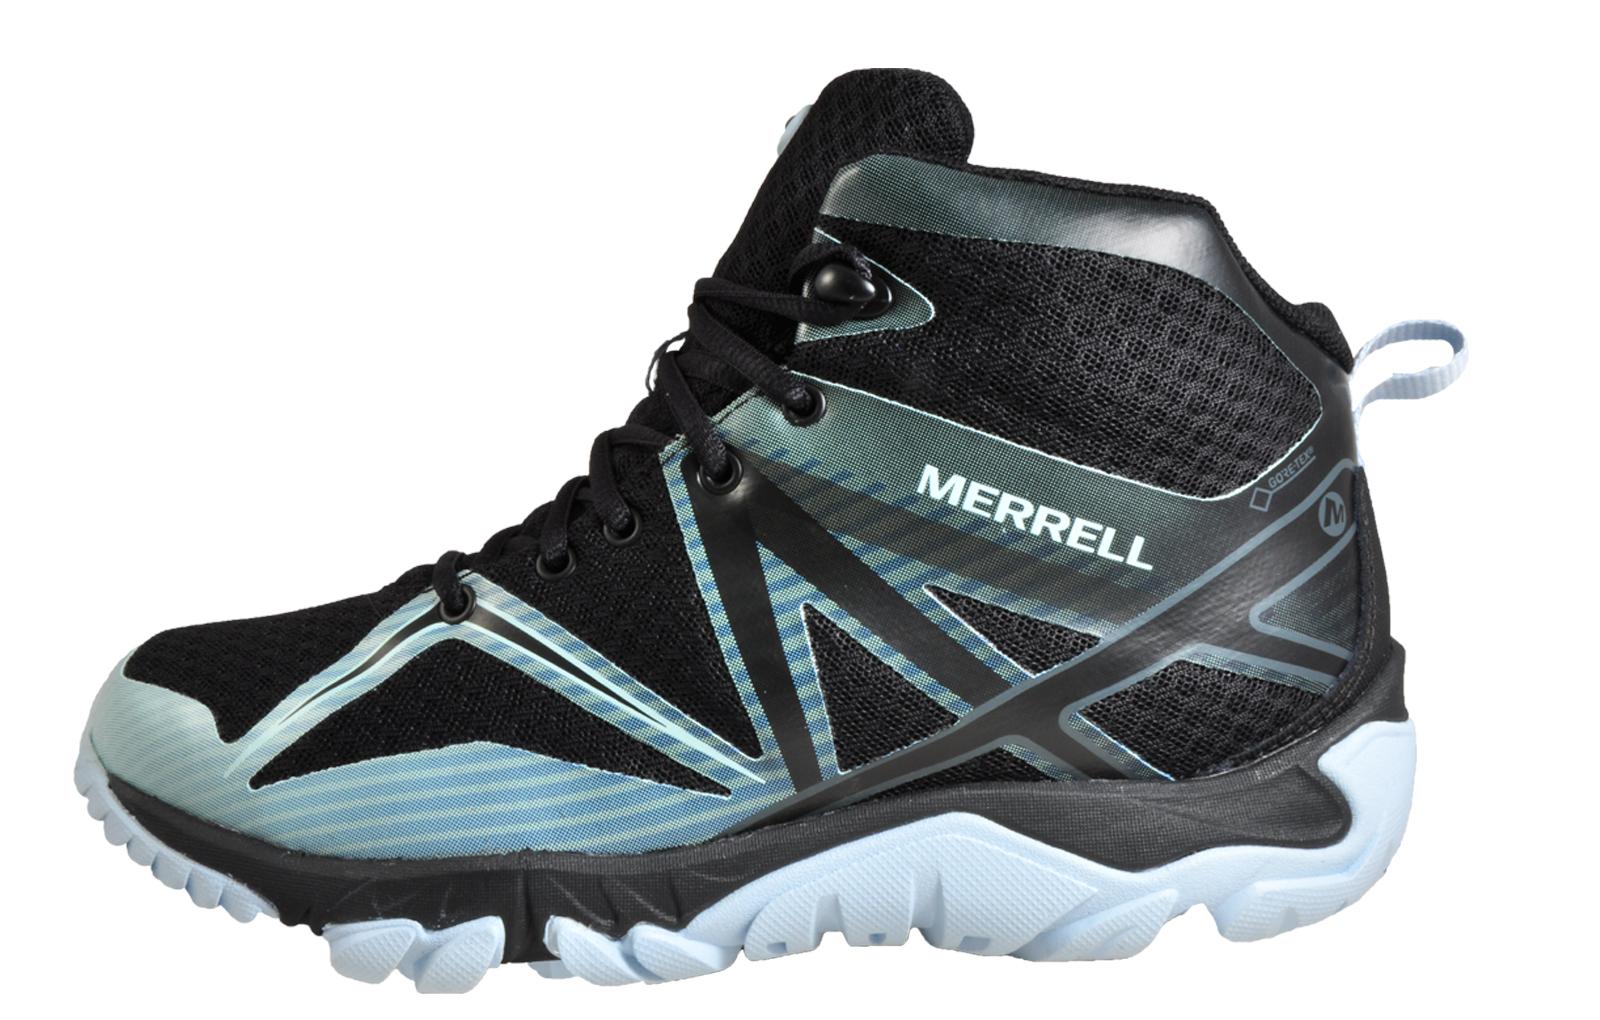 Merrell Edge Mid GTX Gore-Tex Womens - ML172577